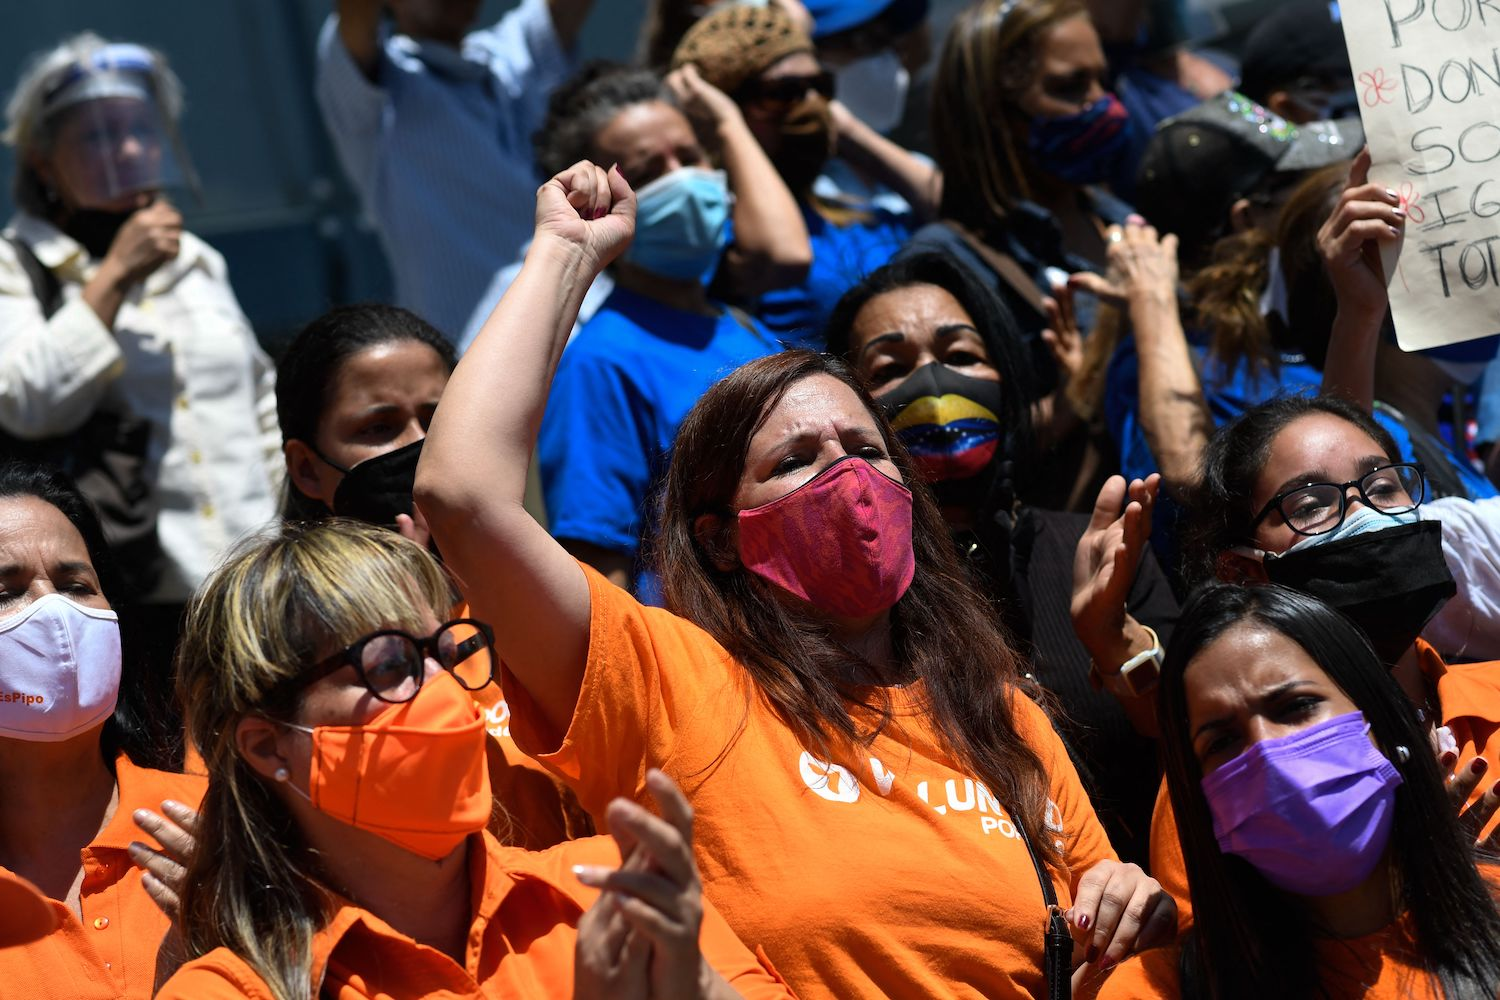 Venezuelan opposition activists take part in a demonstration to demand greater rights for women outside the United Nations Development Programme building in Caracas, on March 8.